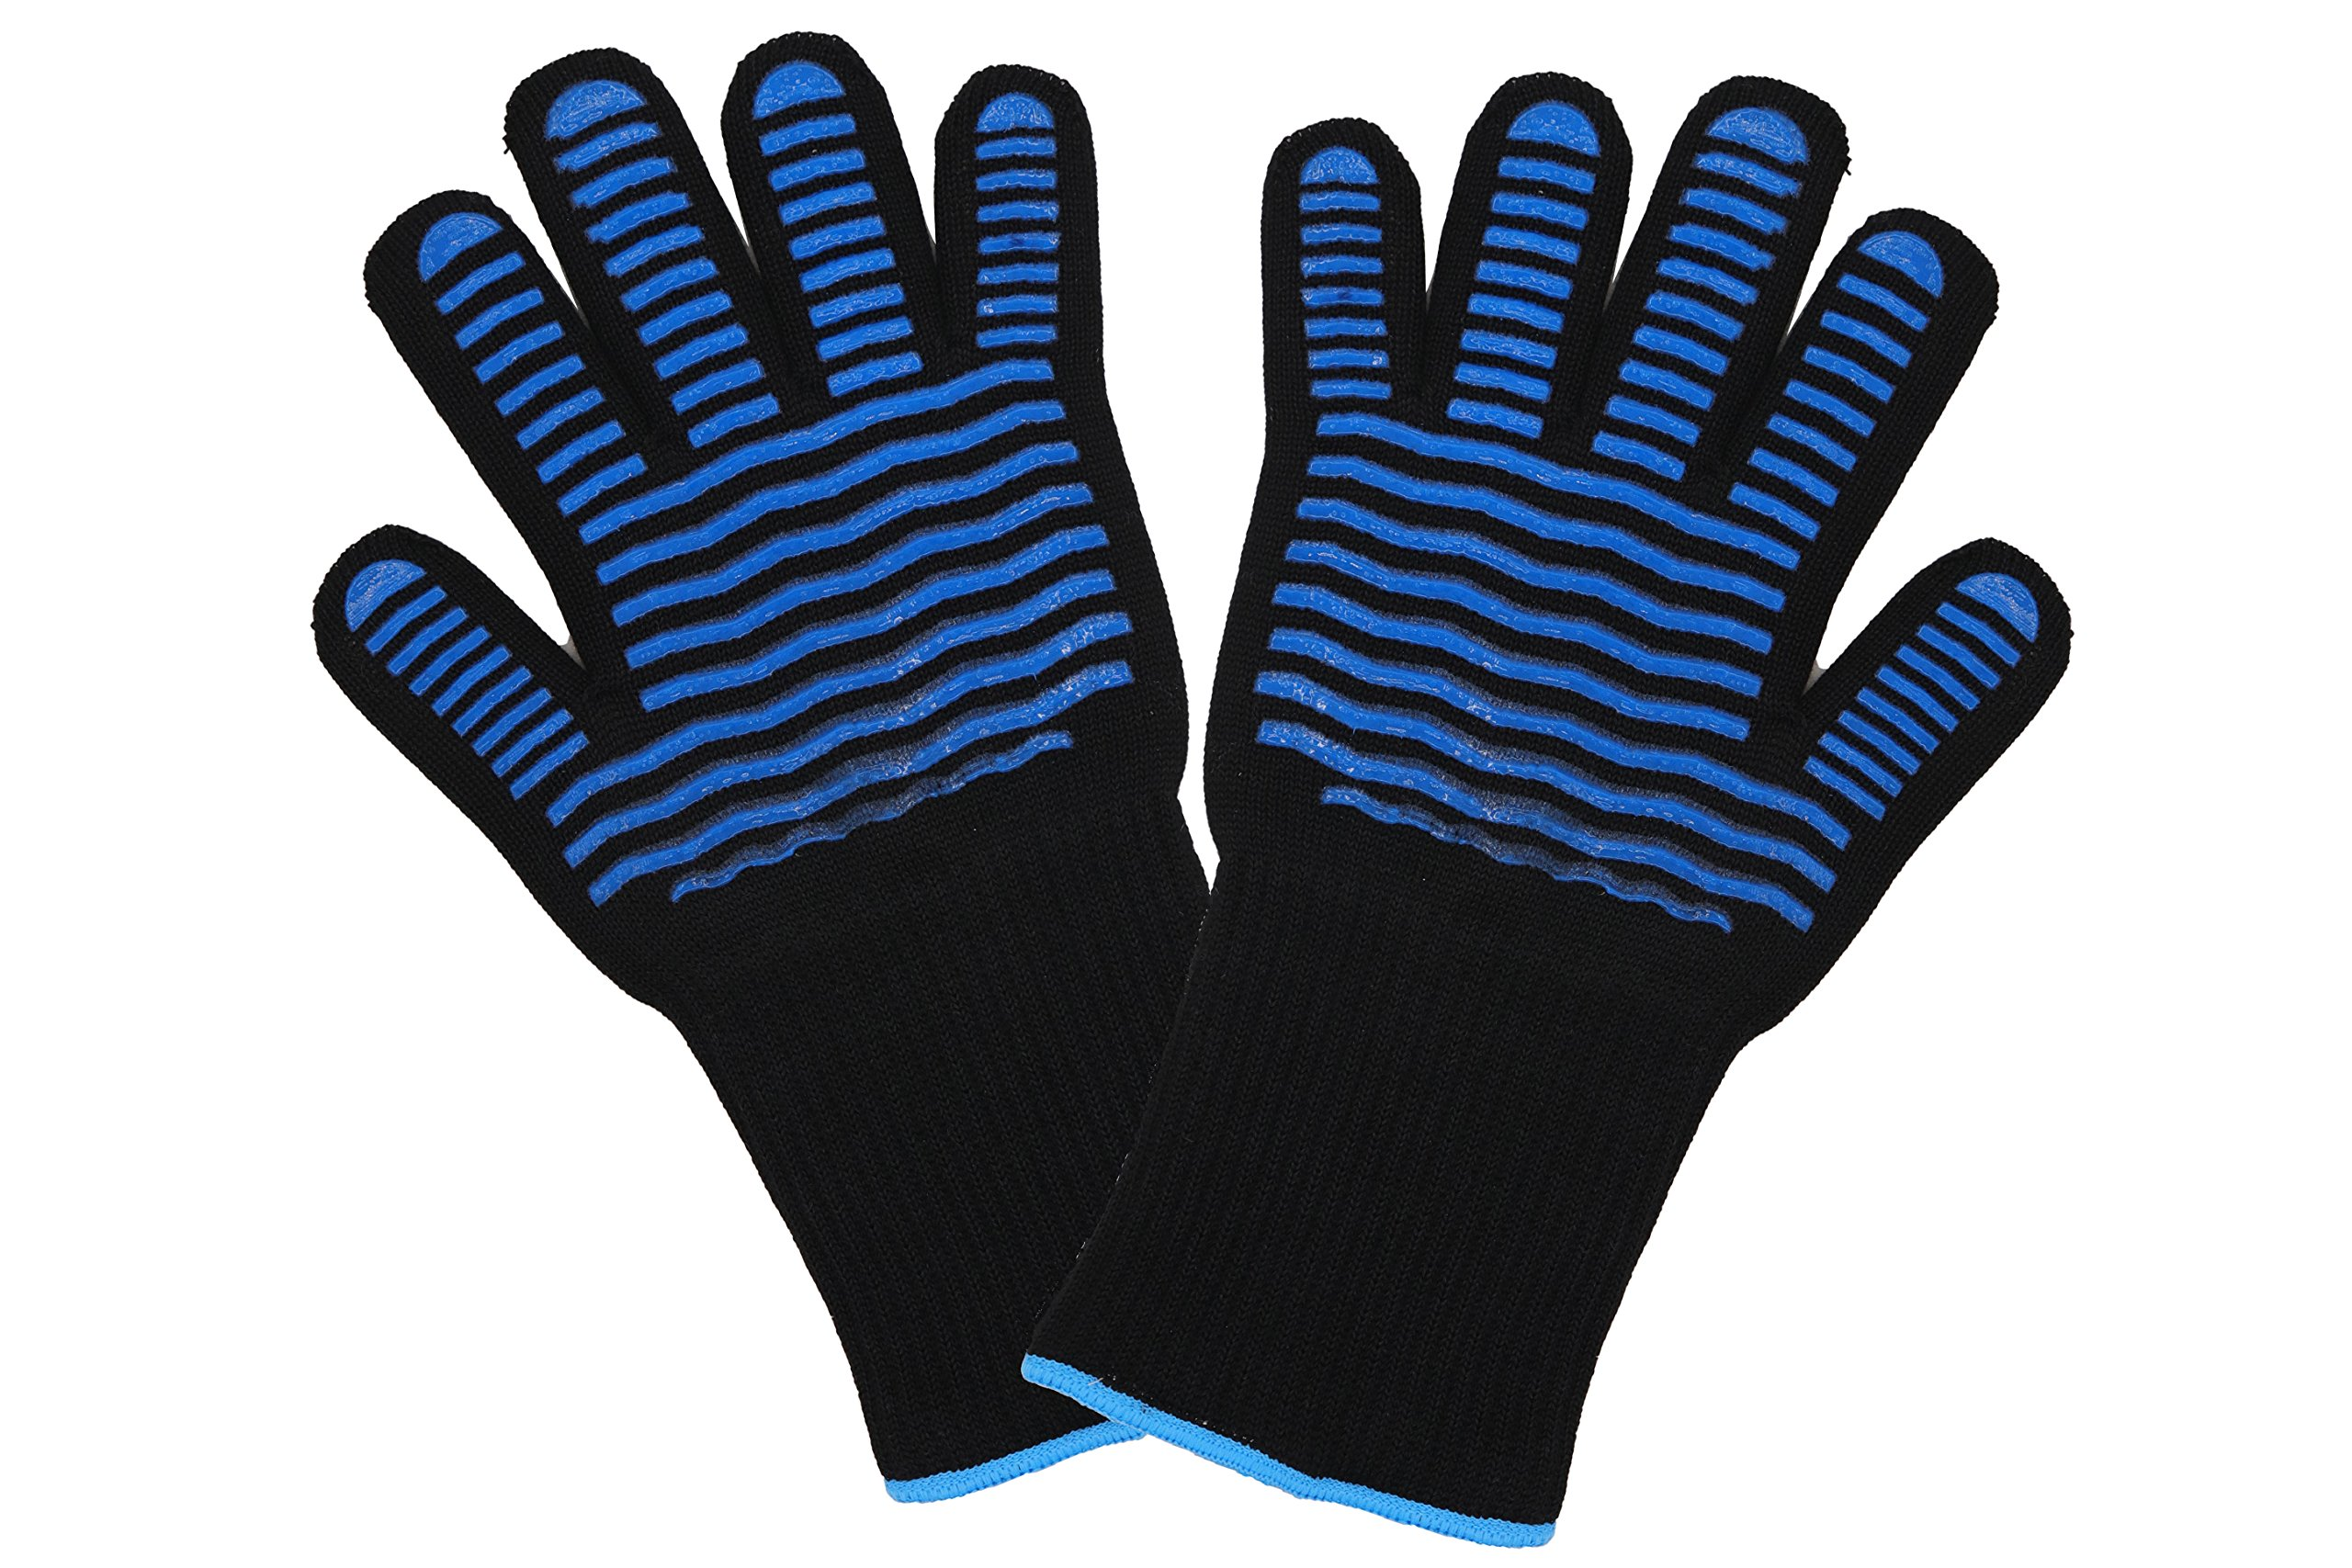 ETHDA Extreme Heat Resistant 932°F Gloves, Cut Level 3 Protection Mitts, Good for Cooking,Fireplace,Oven,BBQ,Grilling,Baking,Smoker,High Performance,Protect Hands,Mother's Day Gift 1 Pair (Long Cuff)